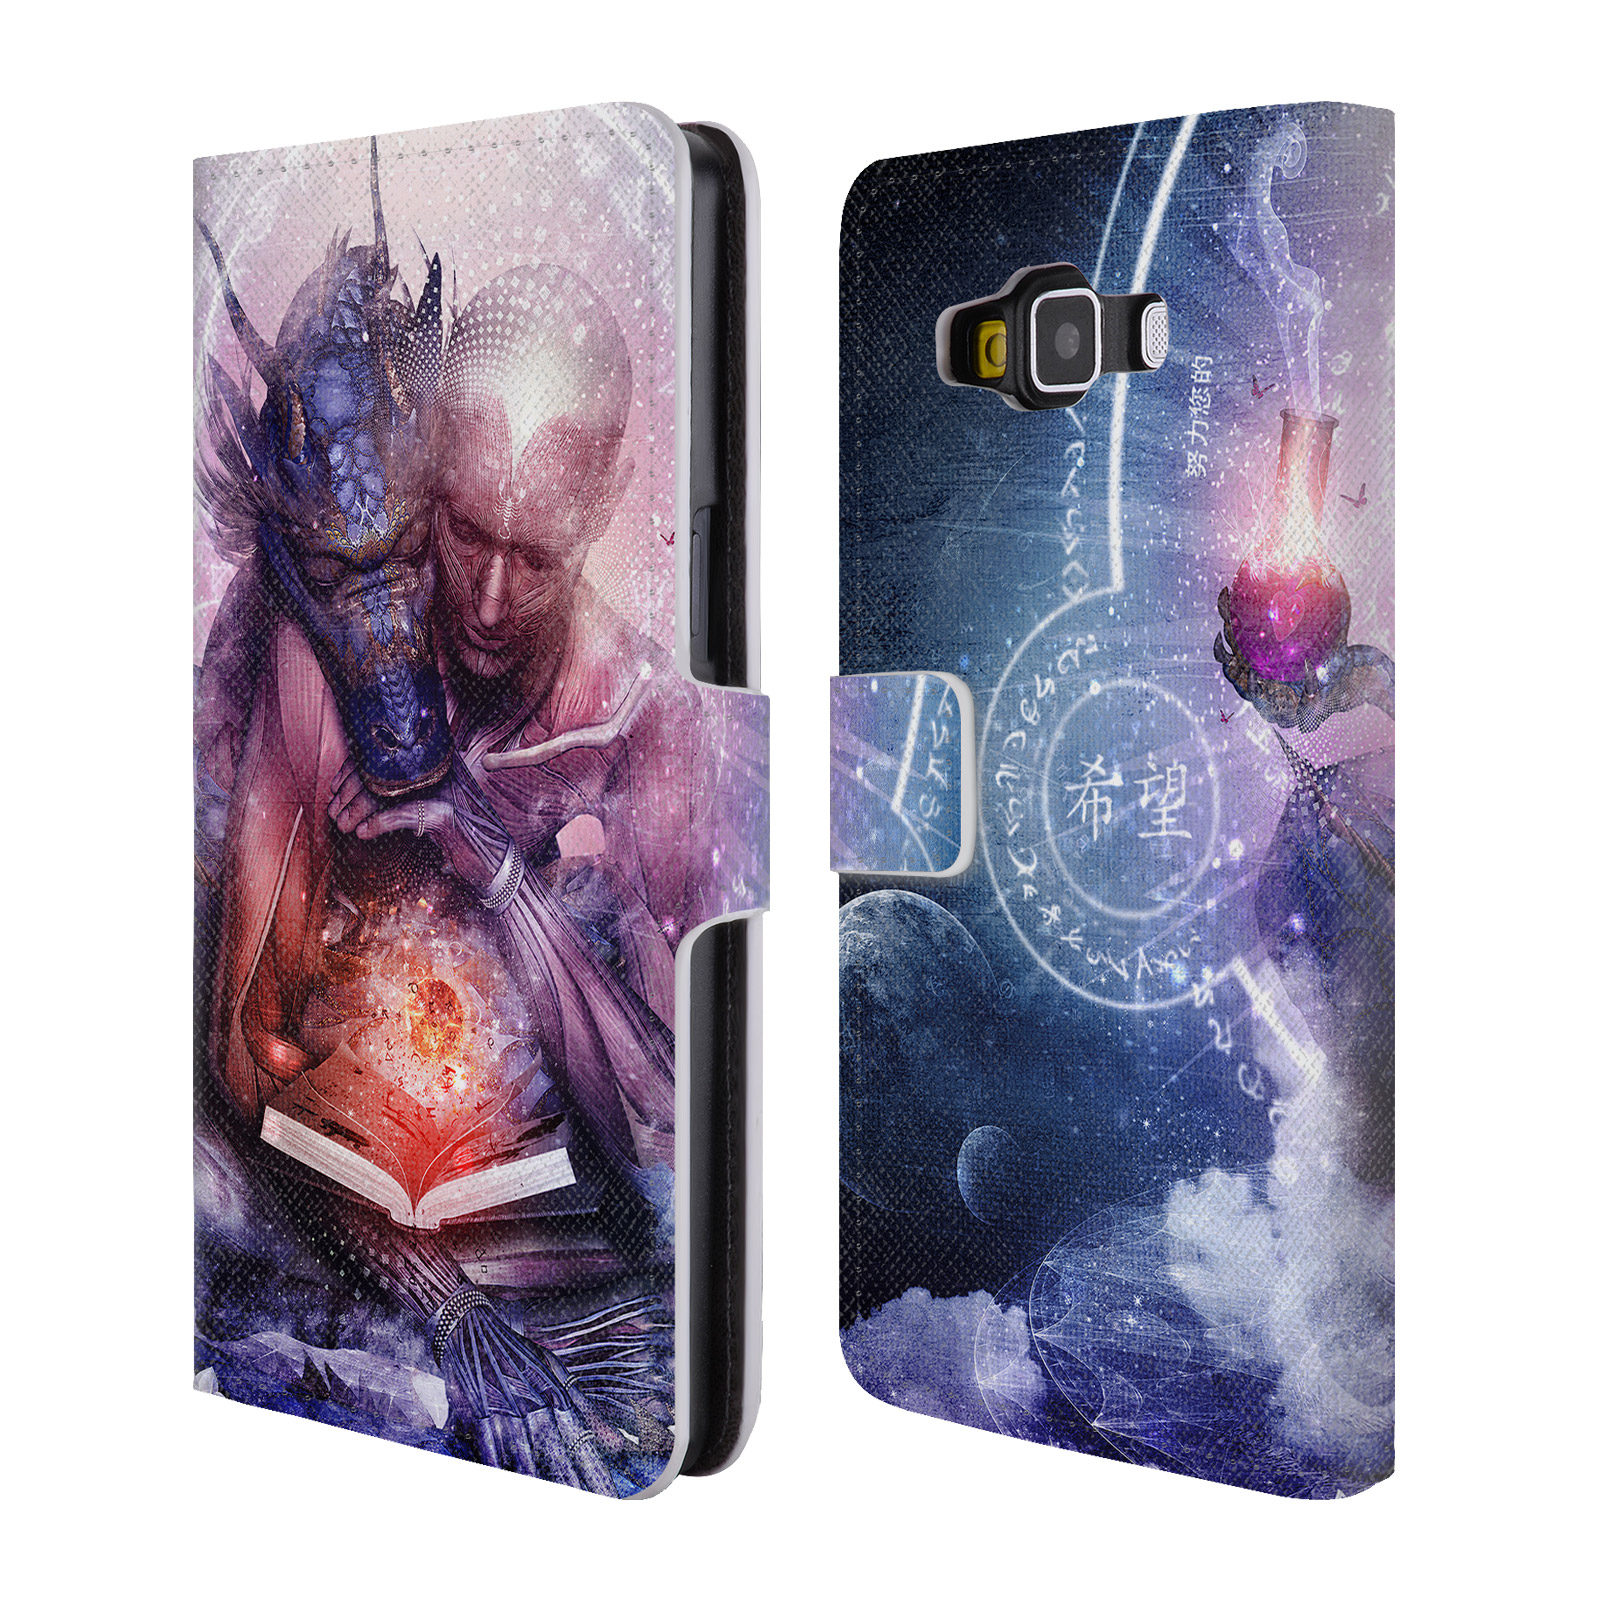 OFFICIAL-CAMERON-GRAY-GODS-LEATHER-BOOK-WALLET-CASE-COVER-FOR-SAMSUNG-PHONES-2